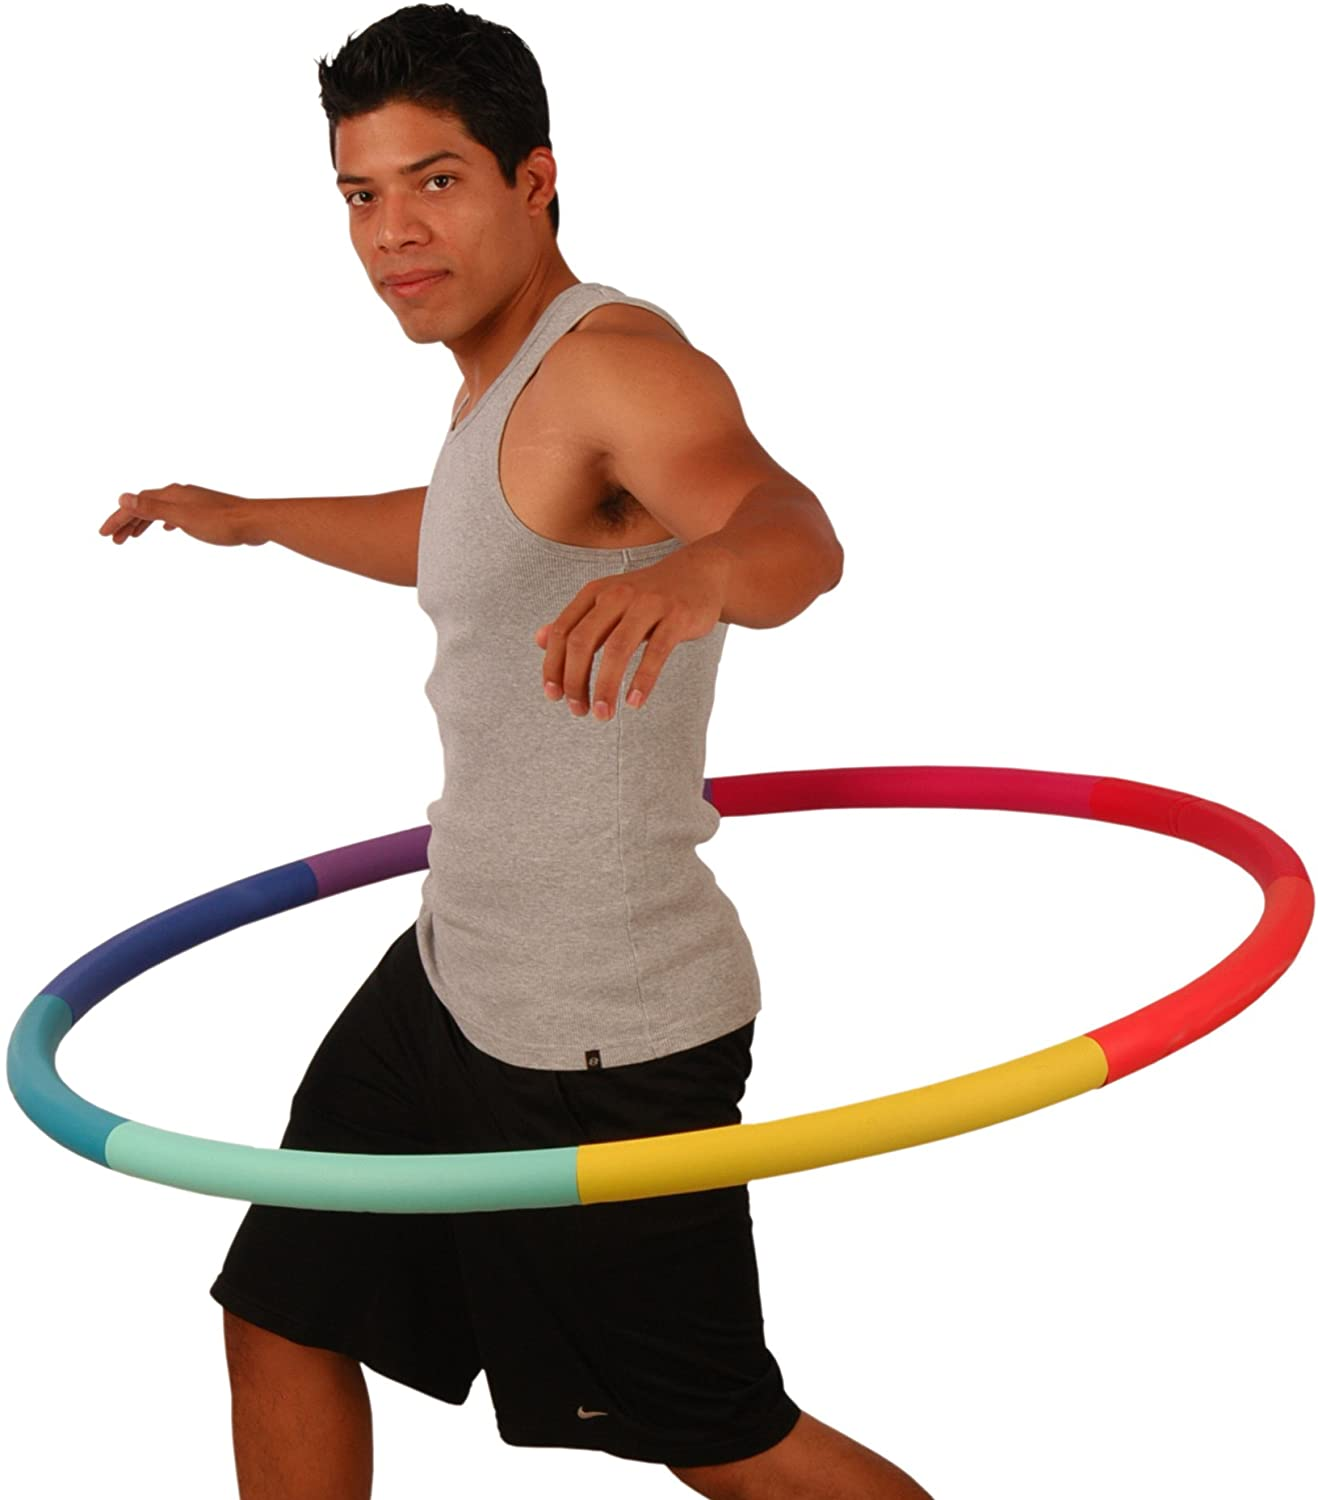 Sports Hoop Weighted Hoop, Weight Loss Trim Hoop 3B - 3.1lb (41 inches Wide) Large, Weighted Fitness Exercise Hoop with No Wavy Ridges (Rainbow)